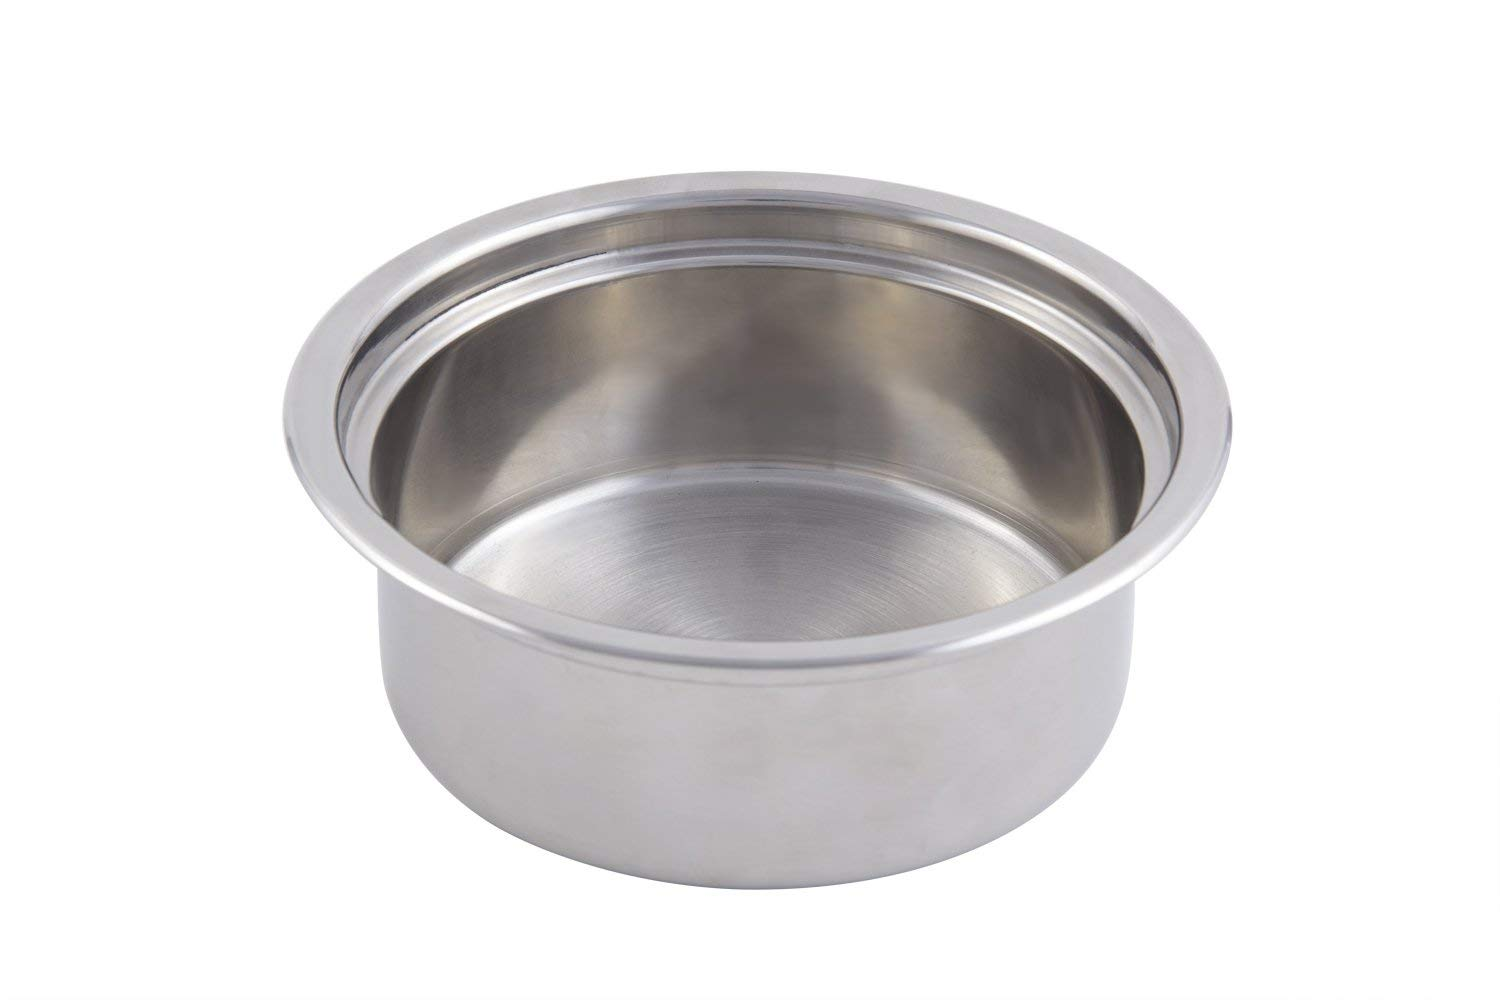 """Bon Chef 60300i Stainless Steel Classic Country French Insert Pan for 23 quart Pot, 1-1/2 quart Capacity, 2-7/8"""" Diameter x 8"""" Height"""